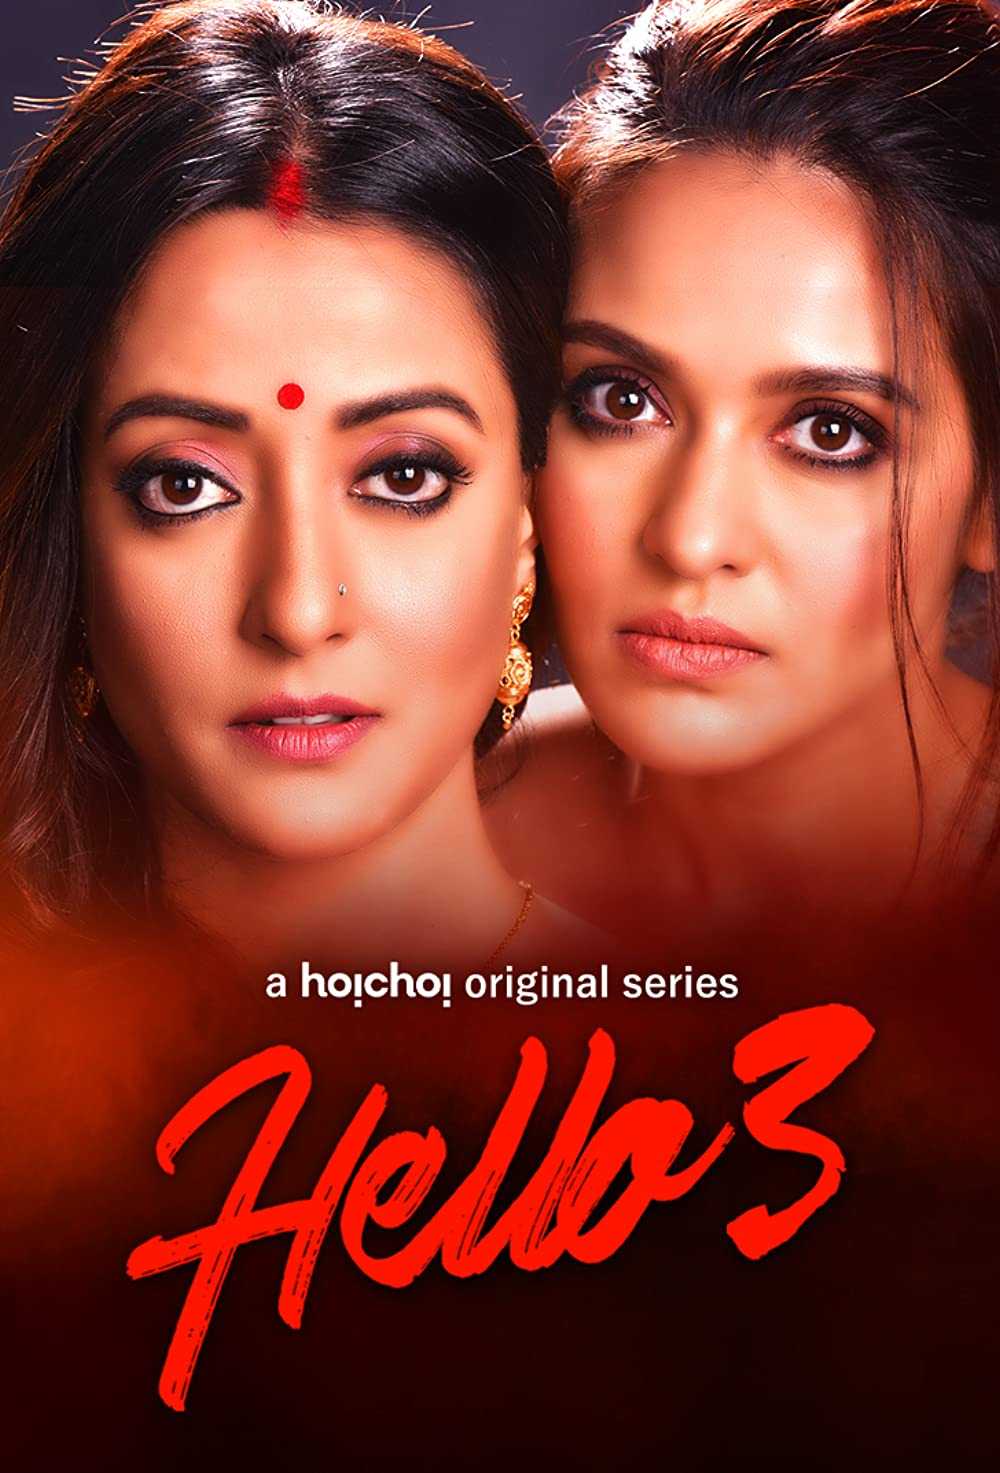 18+ Hello 3 2021 S03 Hoichoi Originals Bengali Web Series 720p HDRip 800MB Download